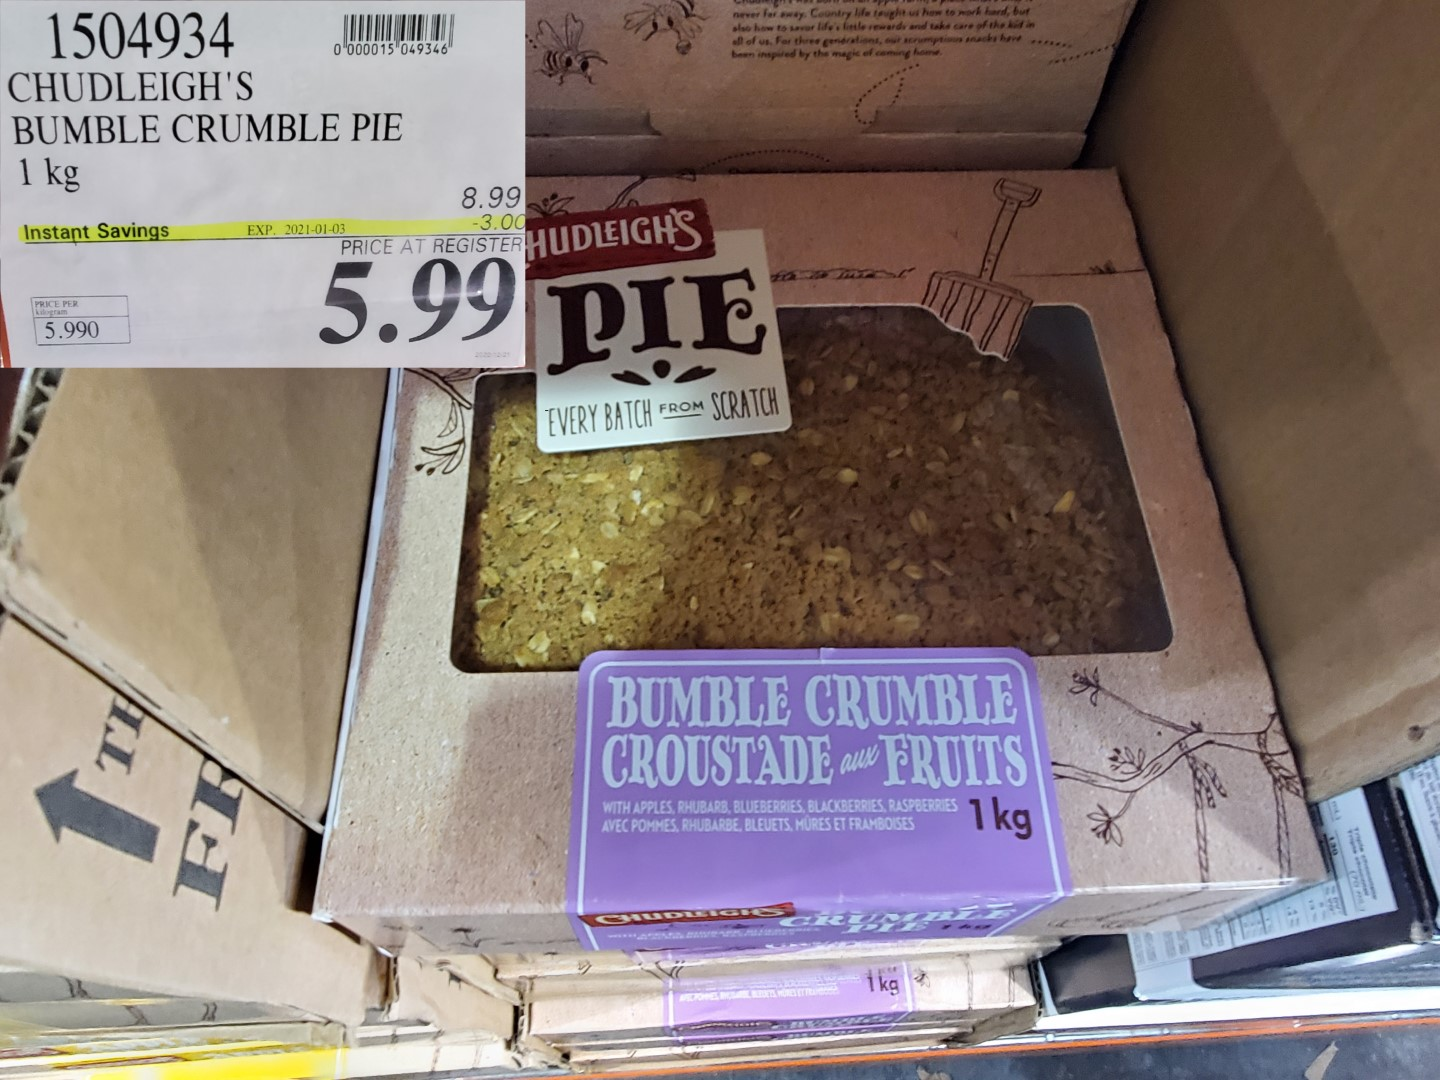 chudleigh's bumble crumble pie